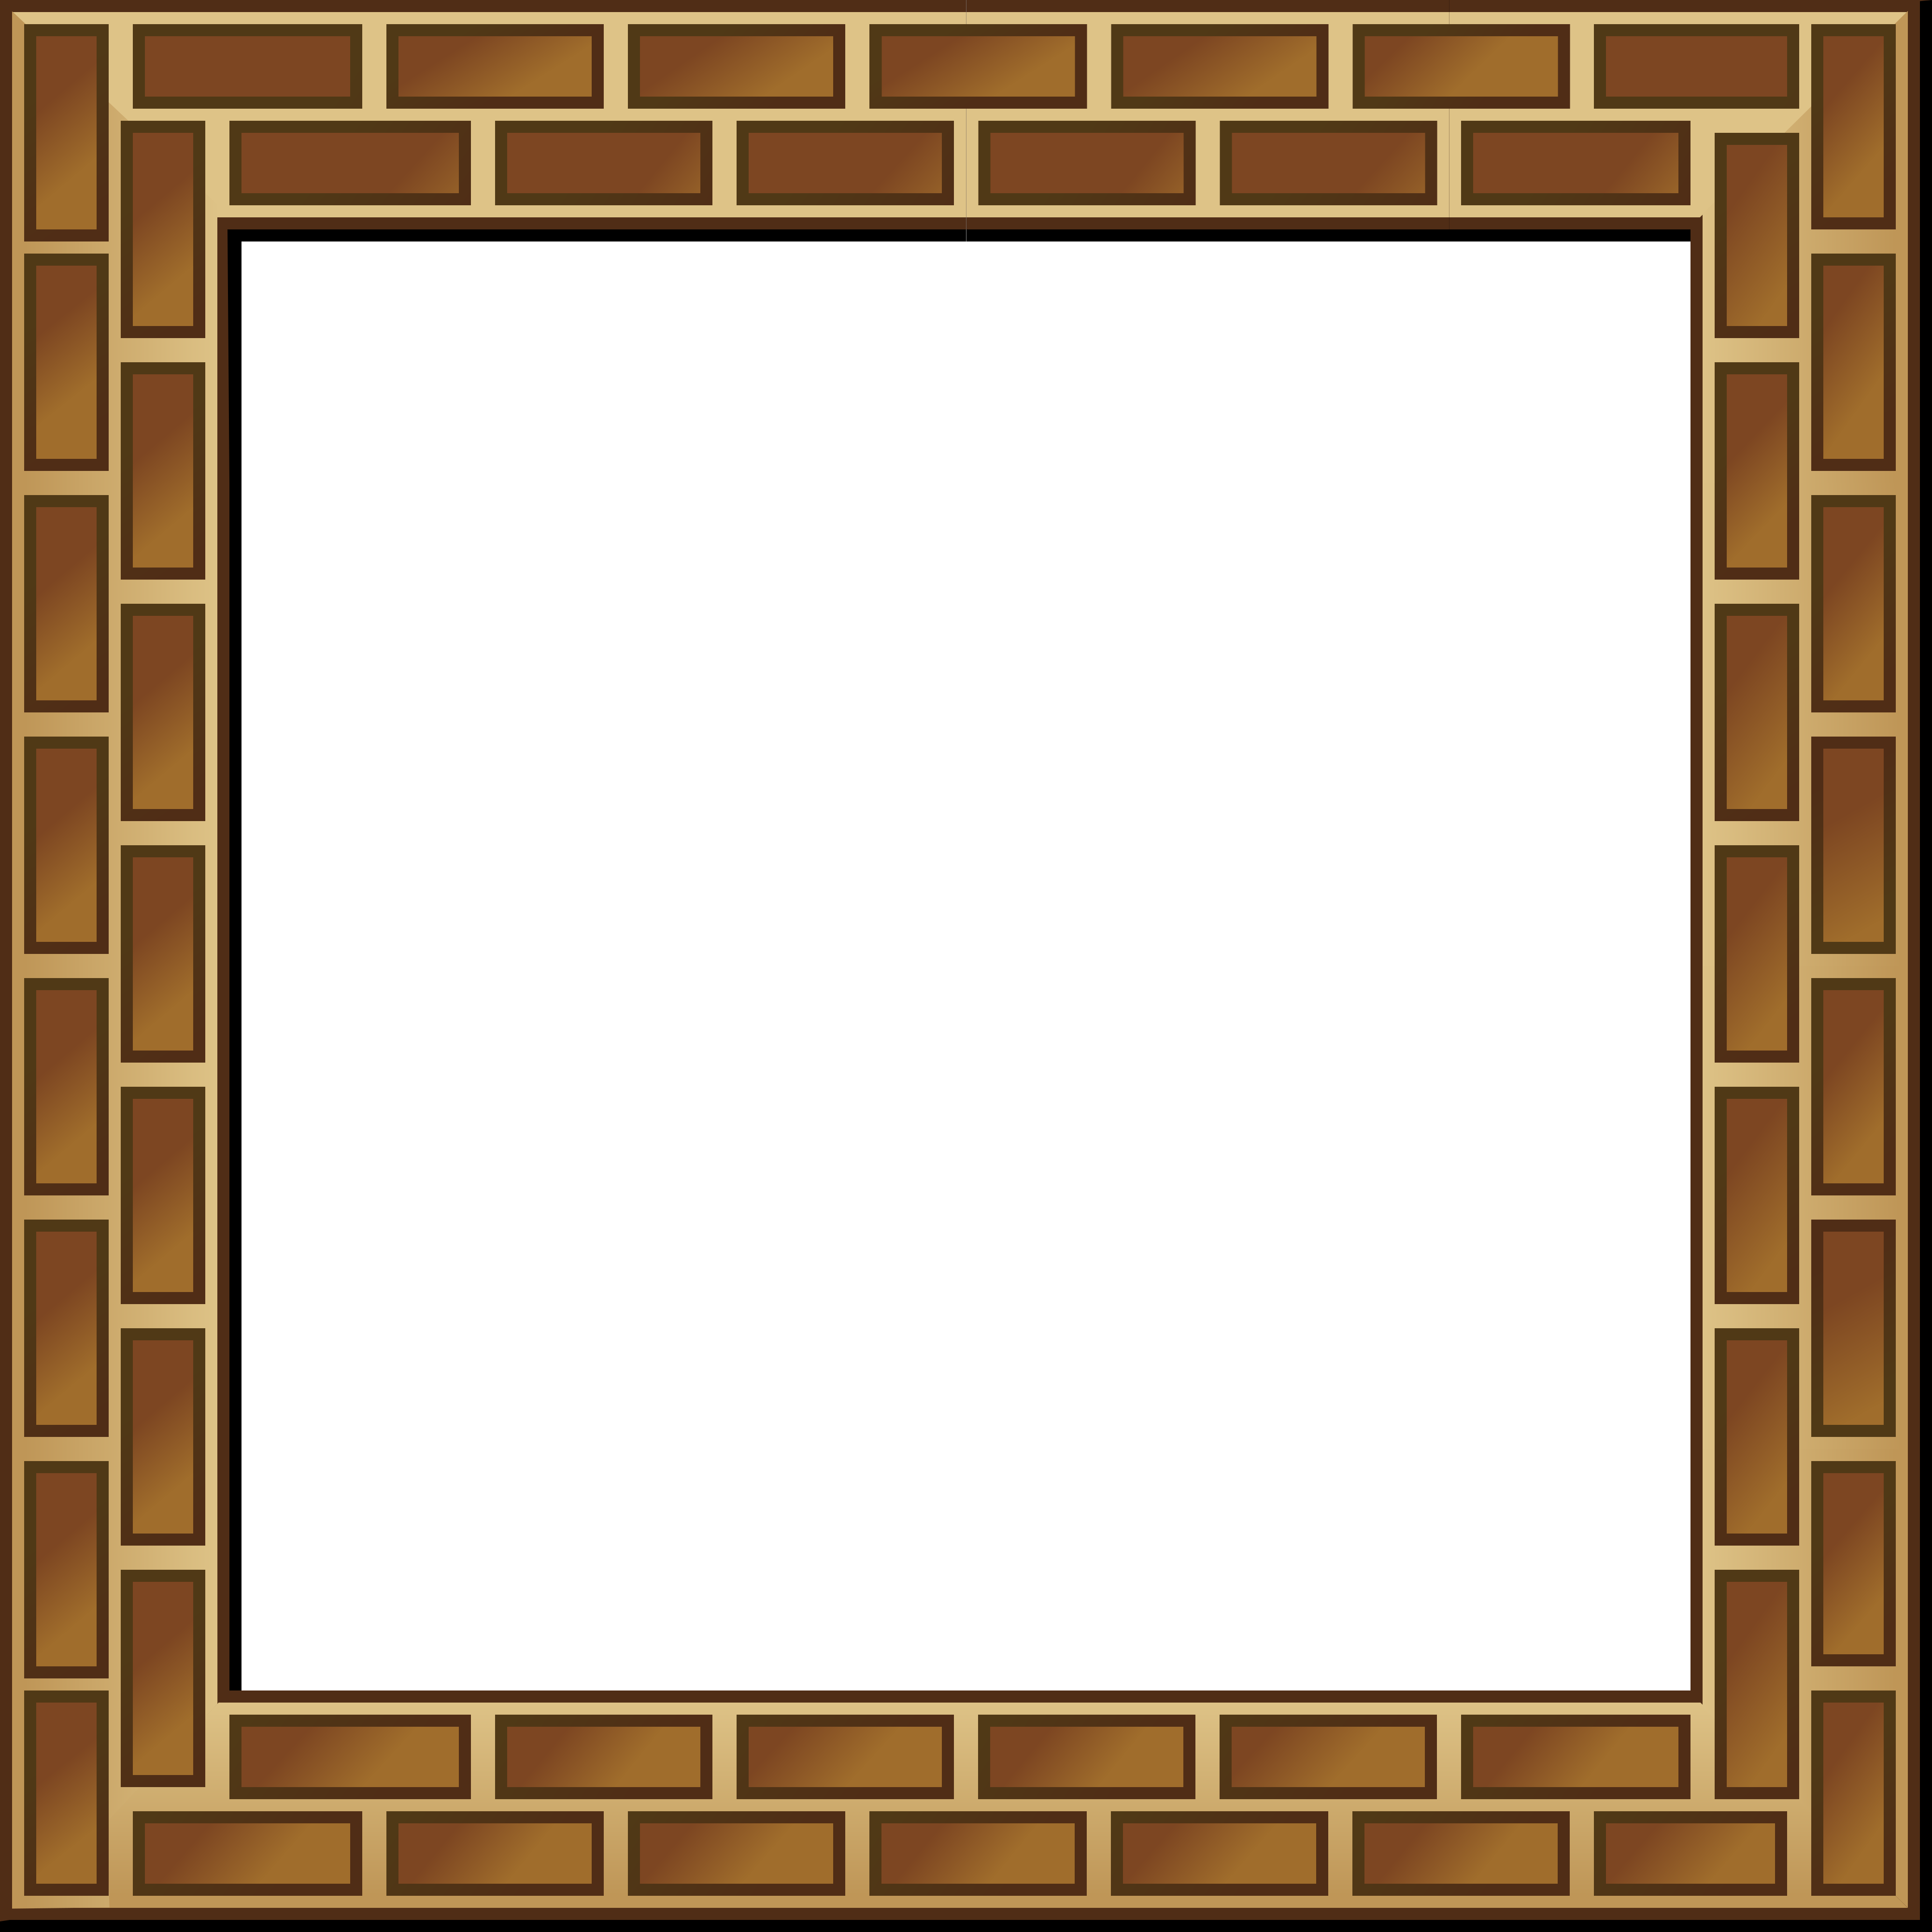 Brown Bricks Frame Border Photopublicdomain Com